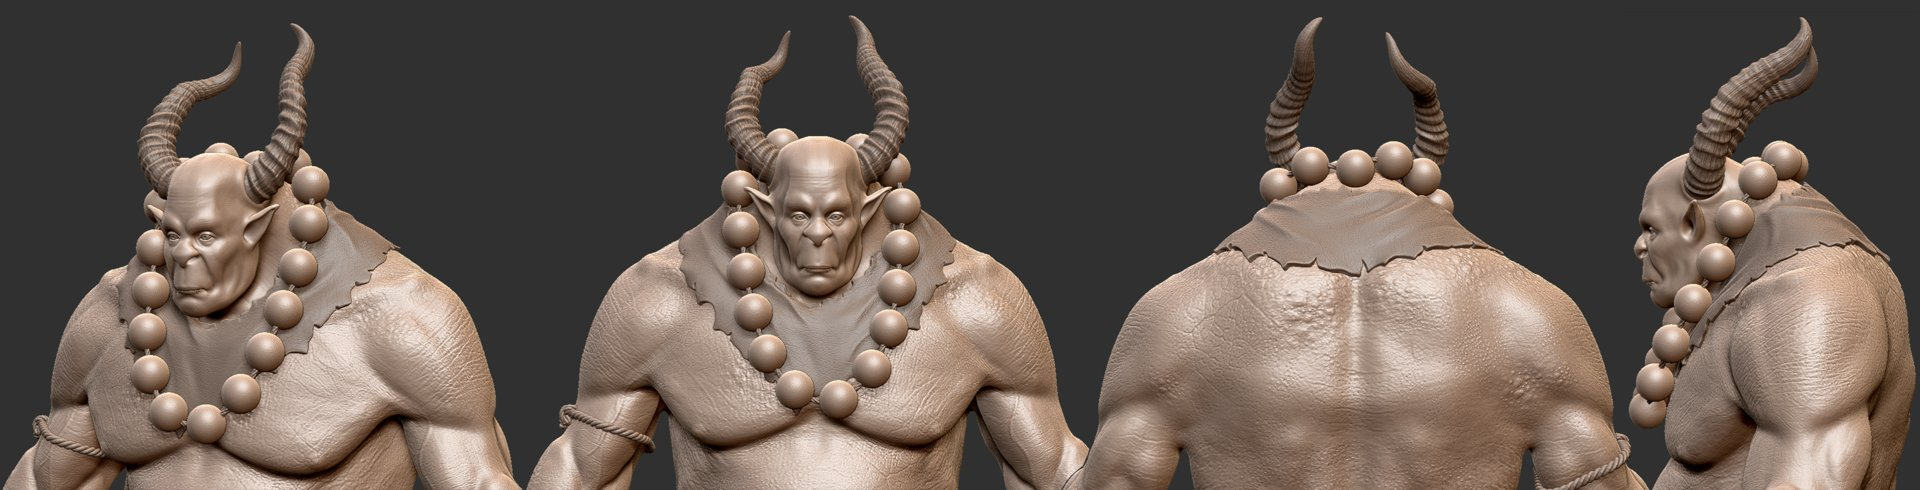 Renato eiras demon closeup sculpt